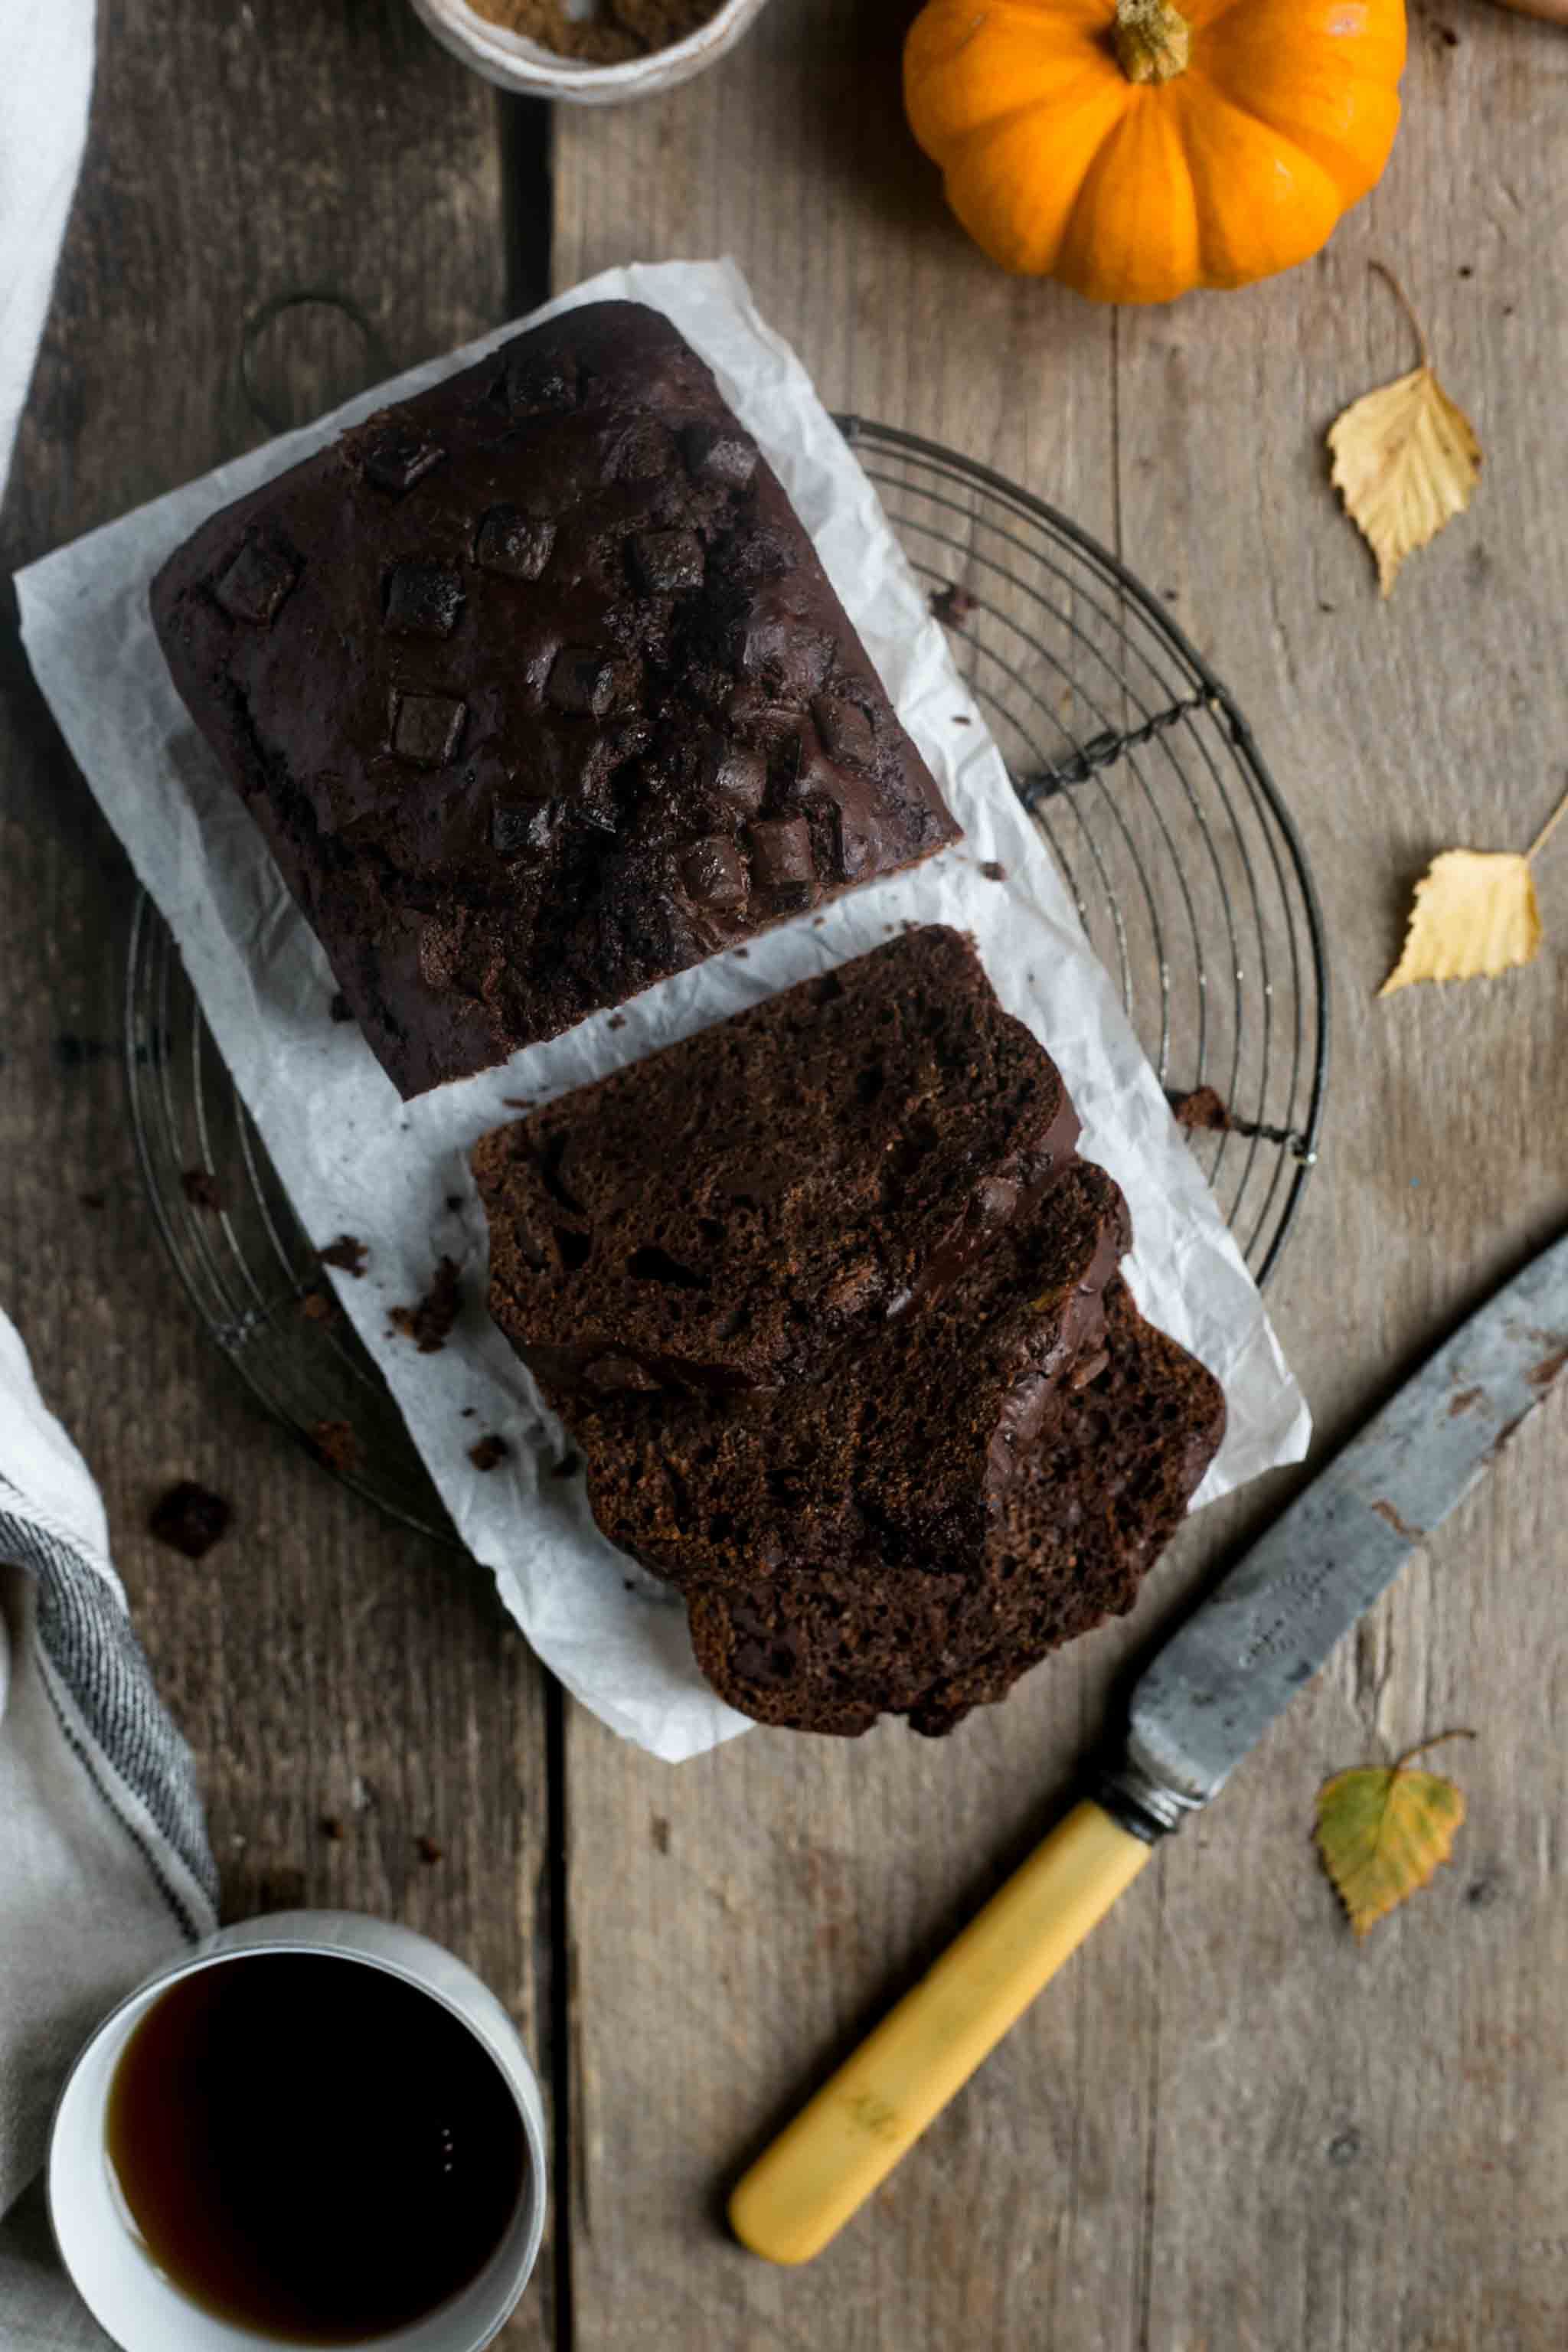 Utterly delicious spiced pumpkin chocolate bread #vegan #pumpkin bread | via @annabanana.co